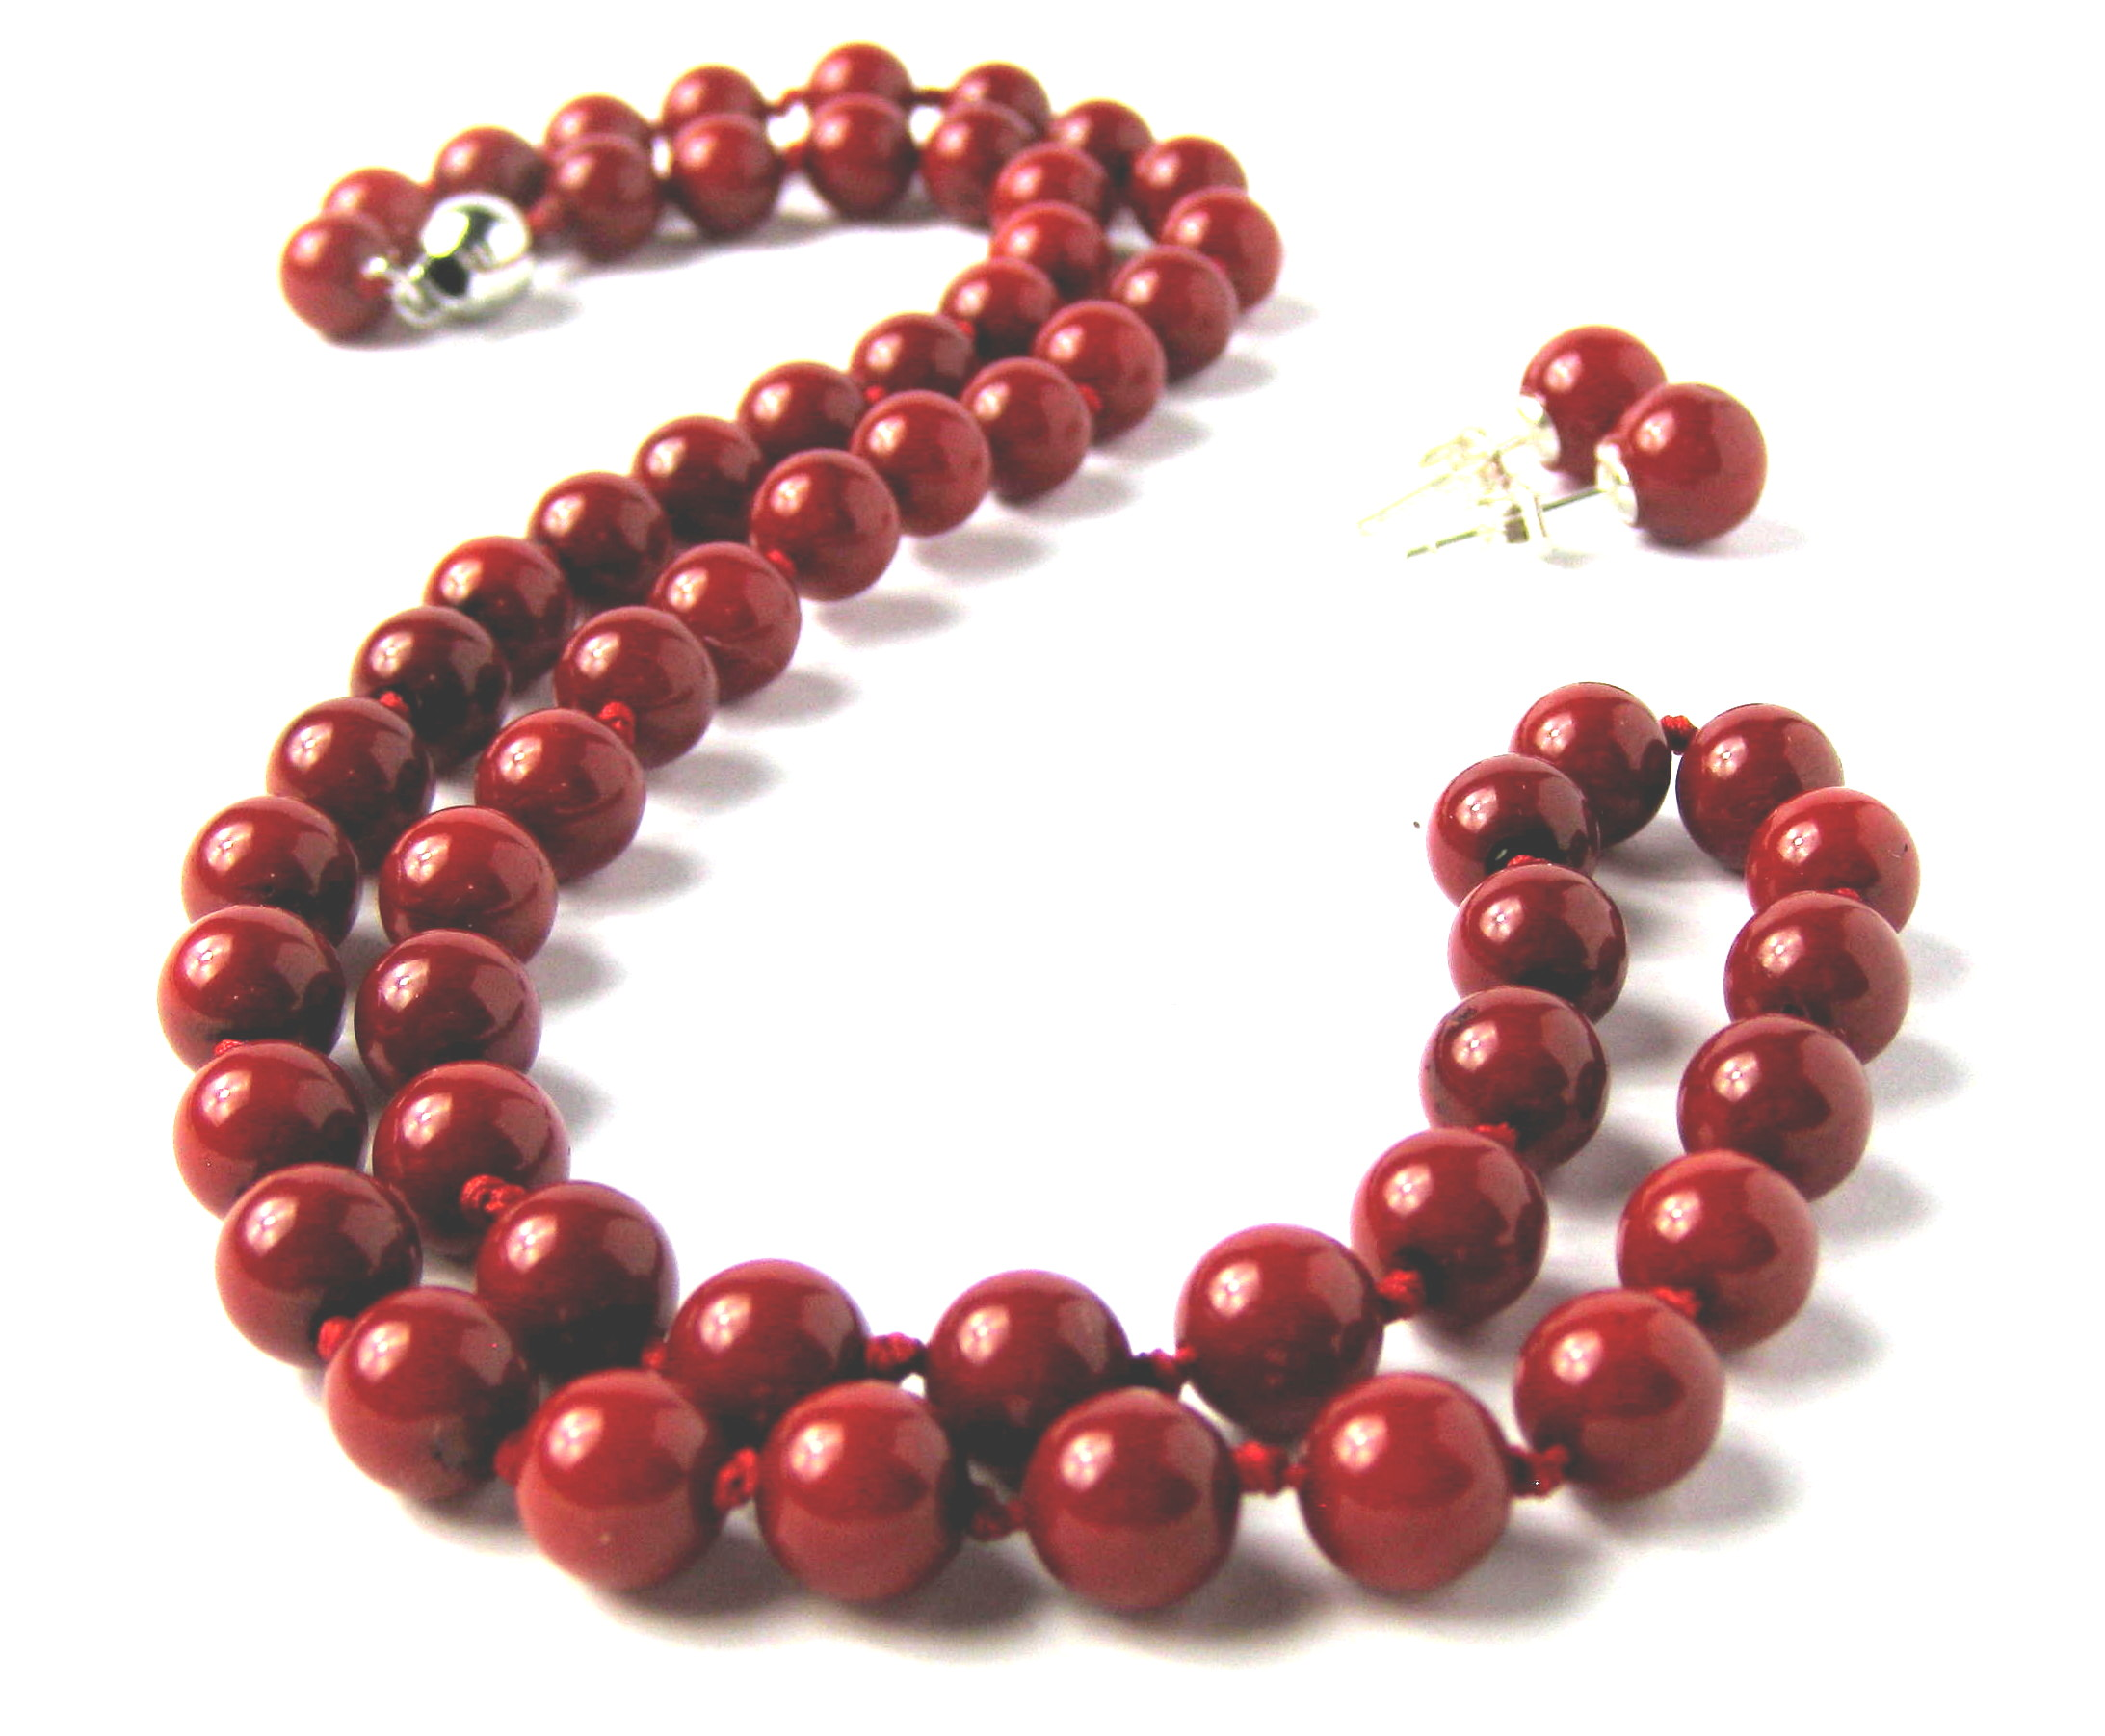 7.5mm Round Red Coral Bead Necklace Earring Set -ne-cr1